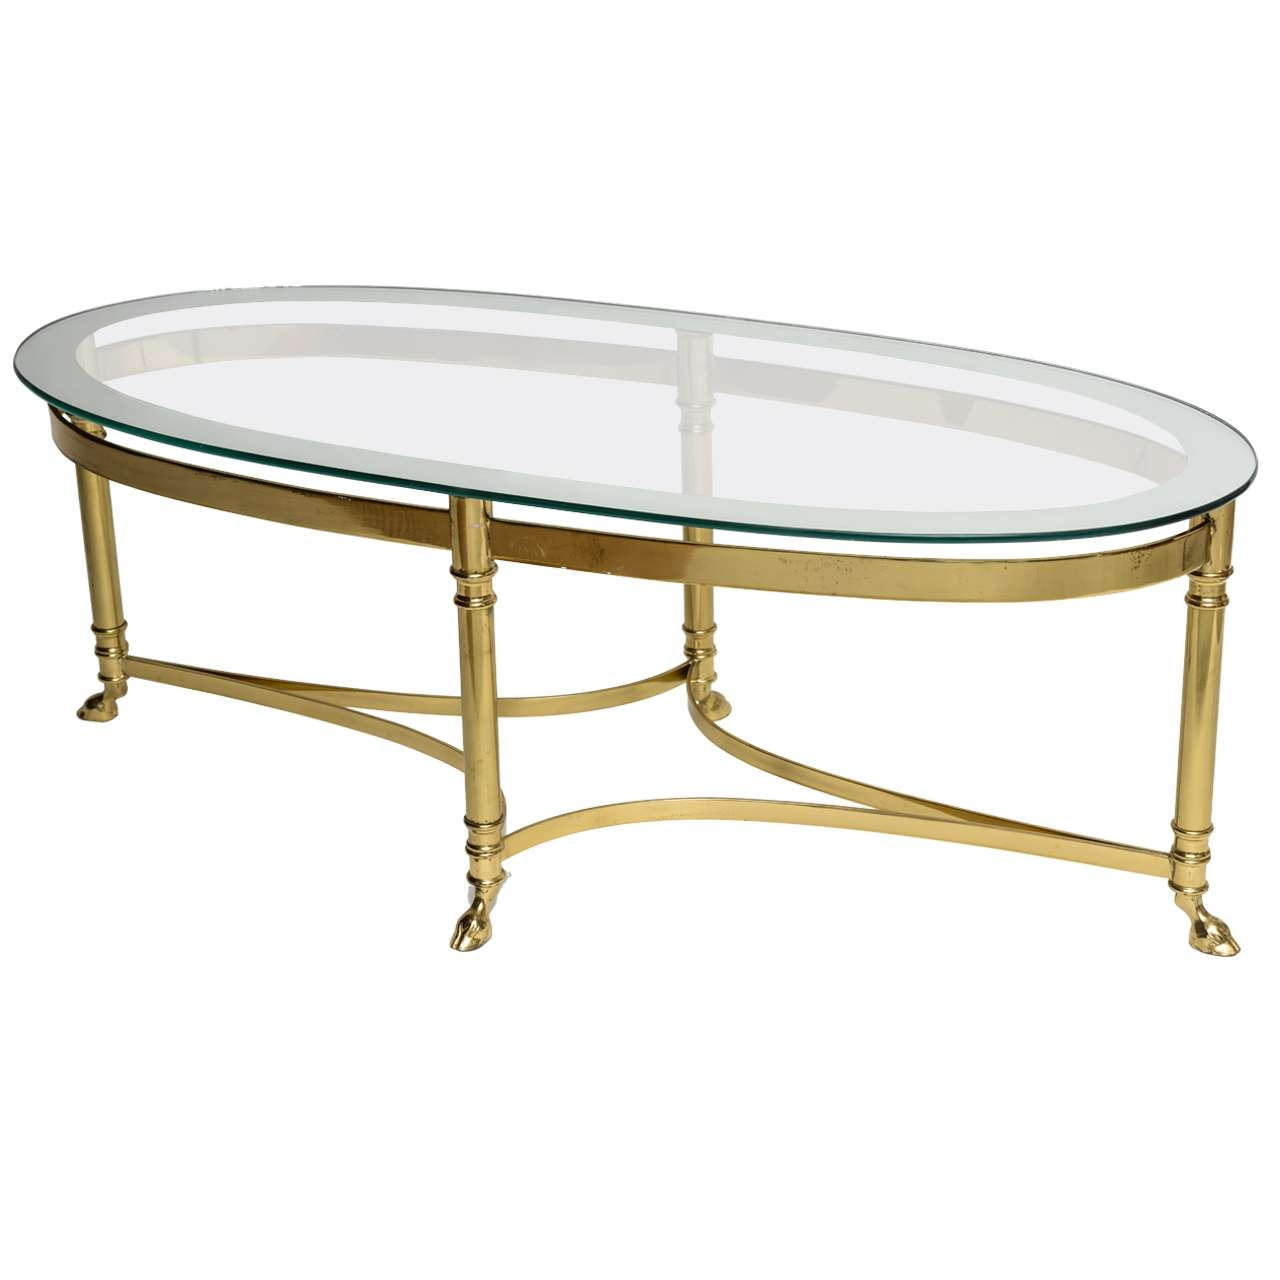 Fashionable Metal Oval Coffee Tables Intended For Coffee Table: Stunning Oval Glass Coffee Table Ideas Small Coffee (View 13 of 20)